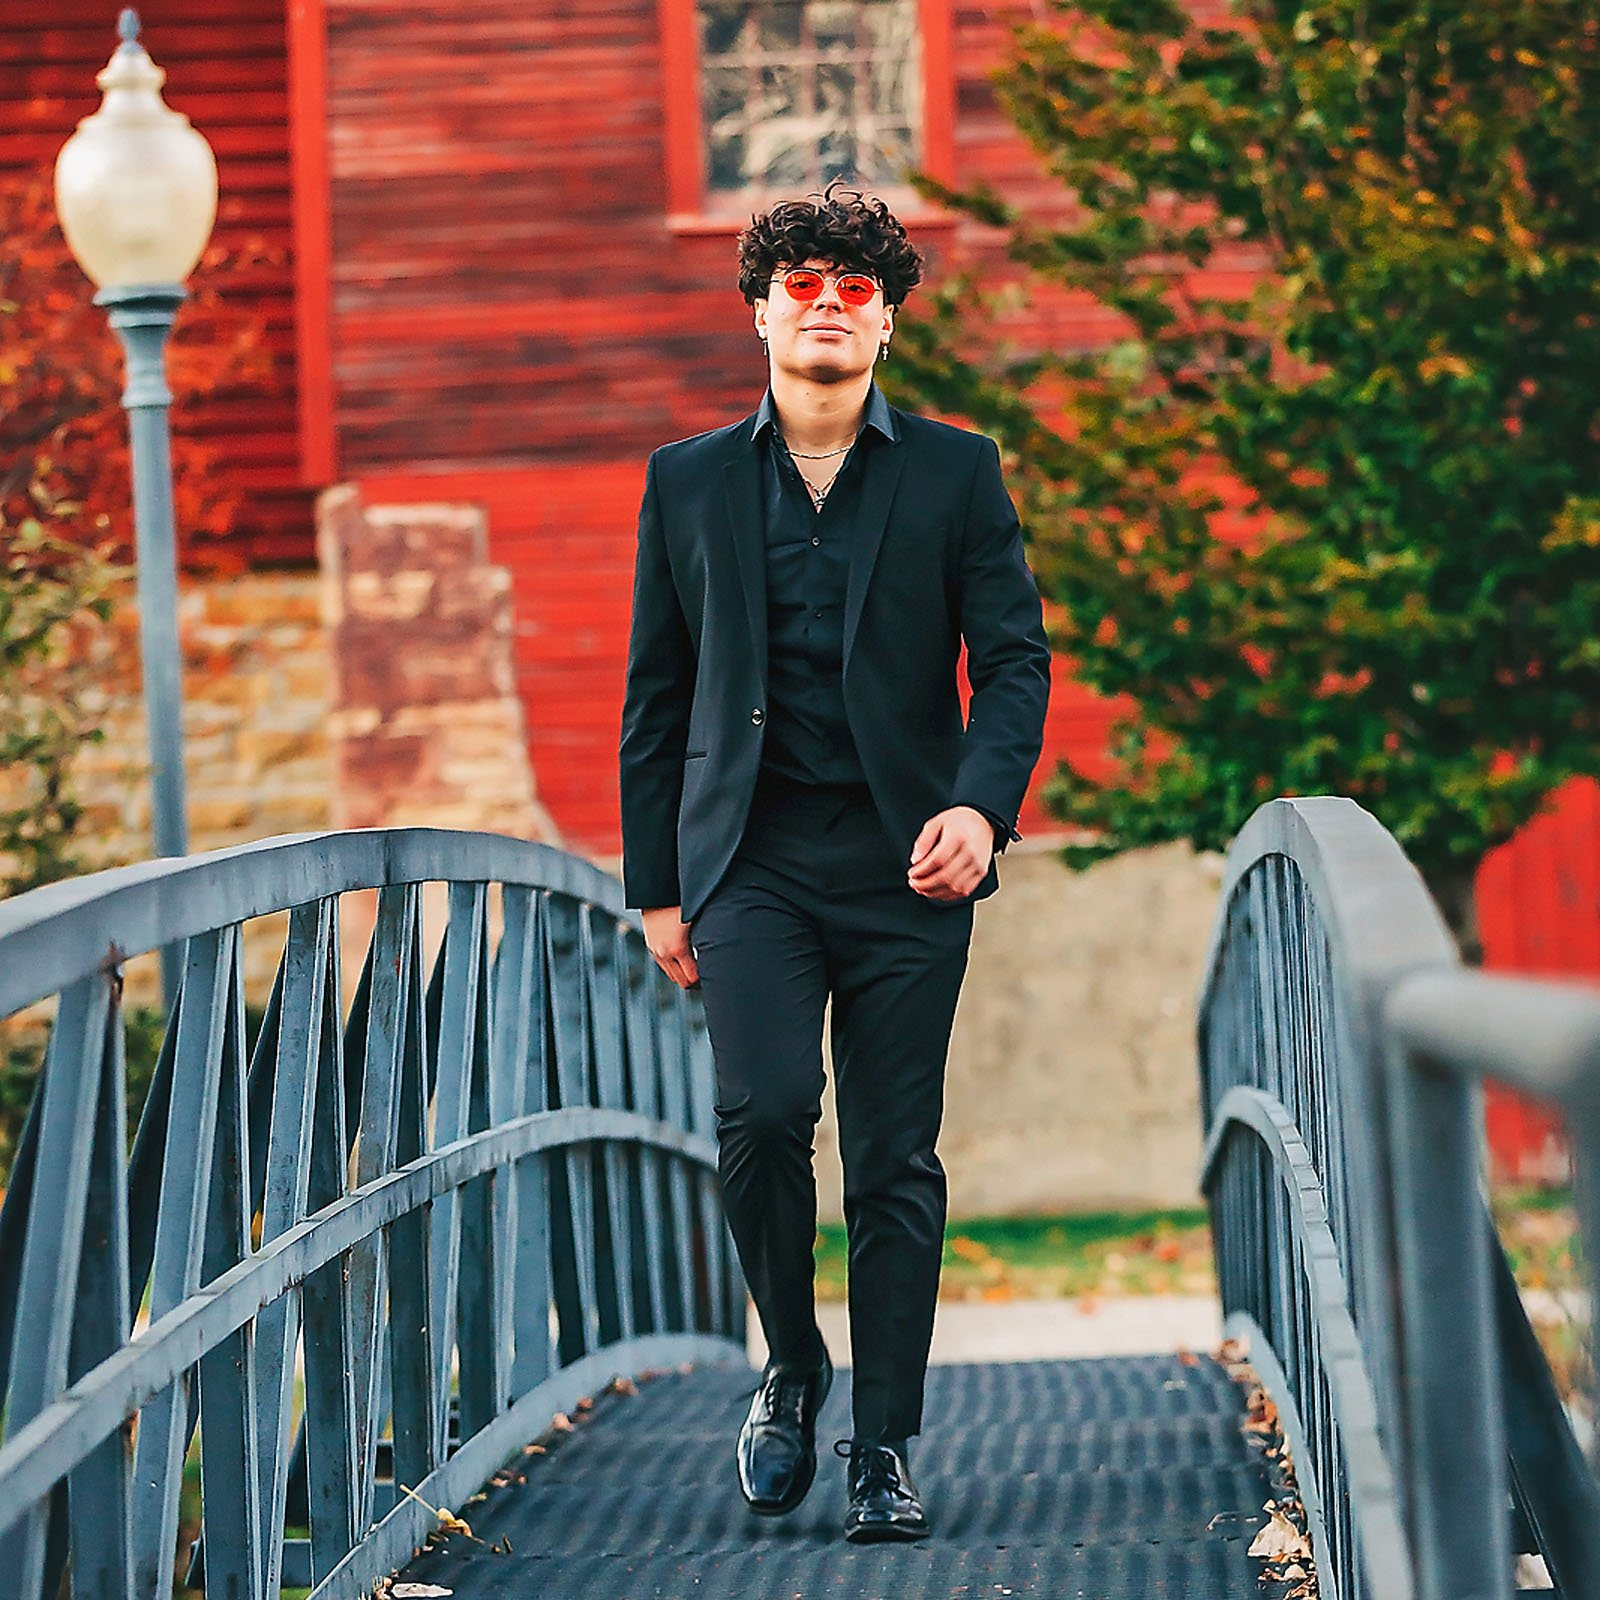 senior portraits; high school senior boy walking across a bridge